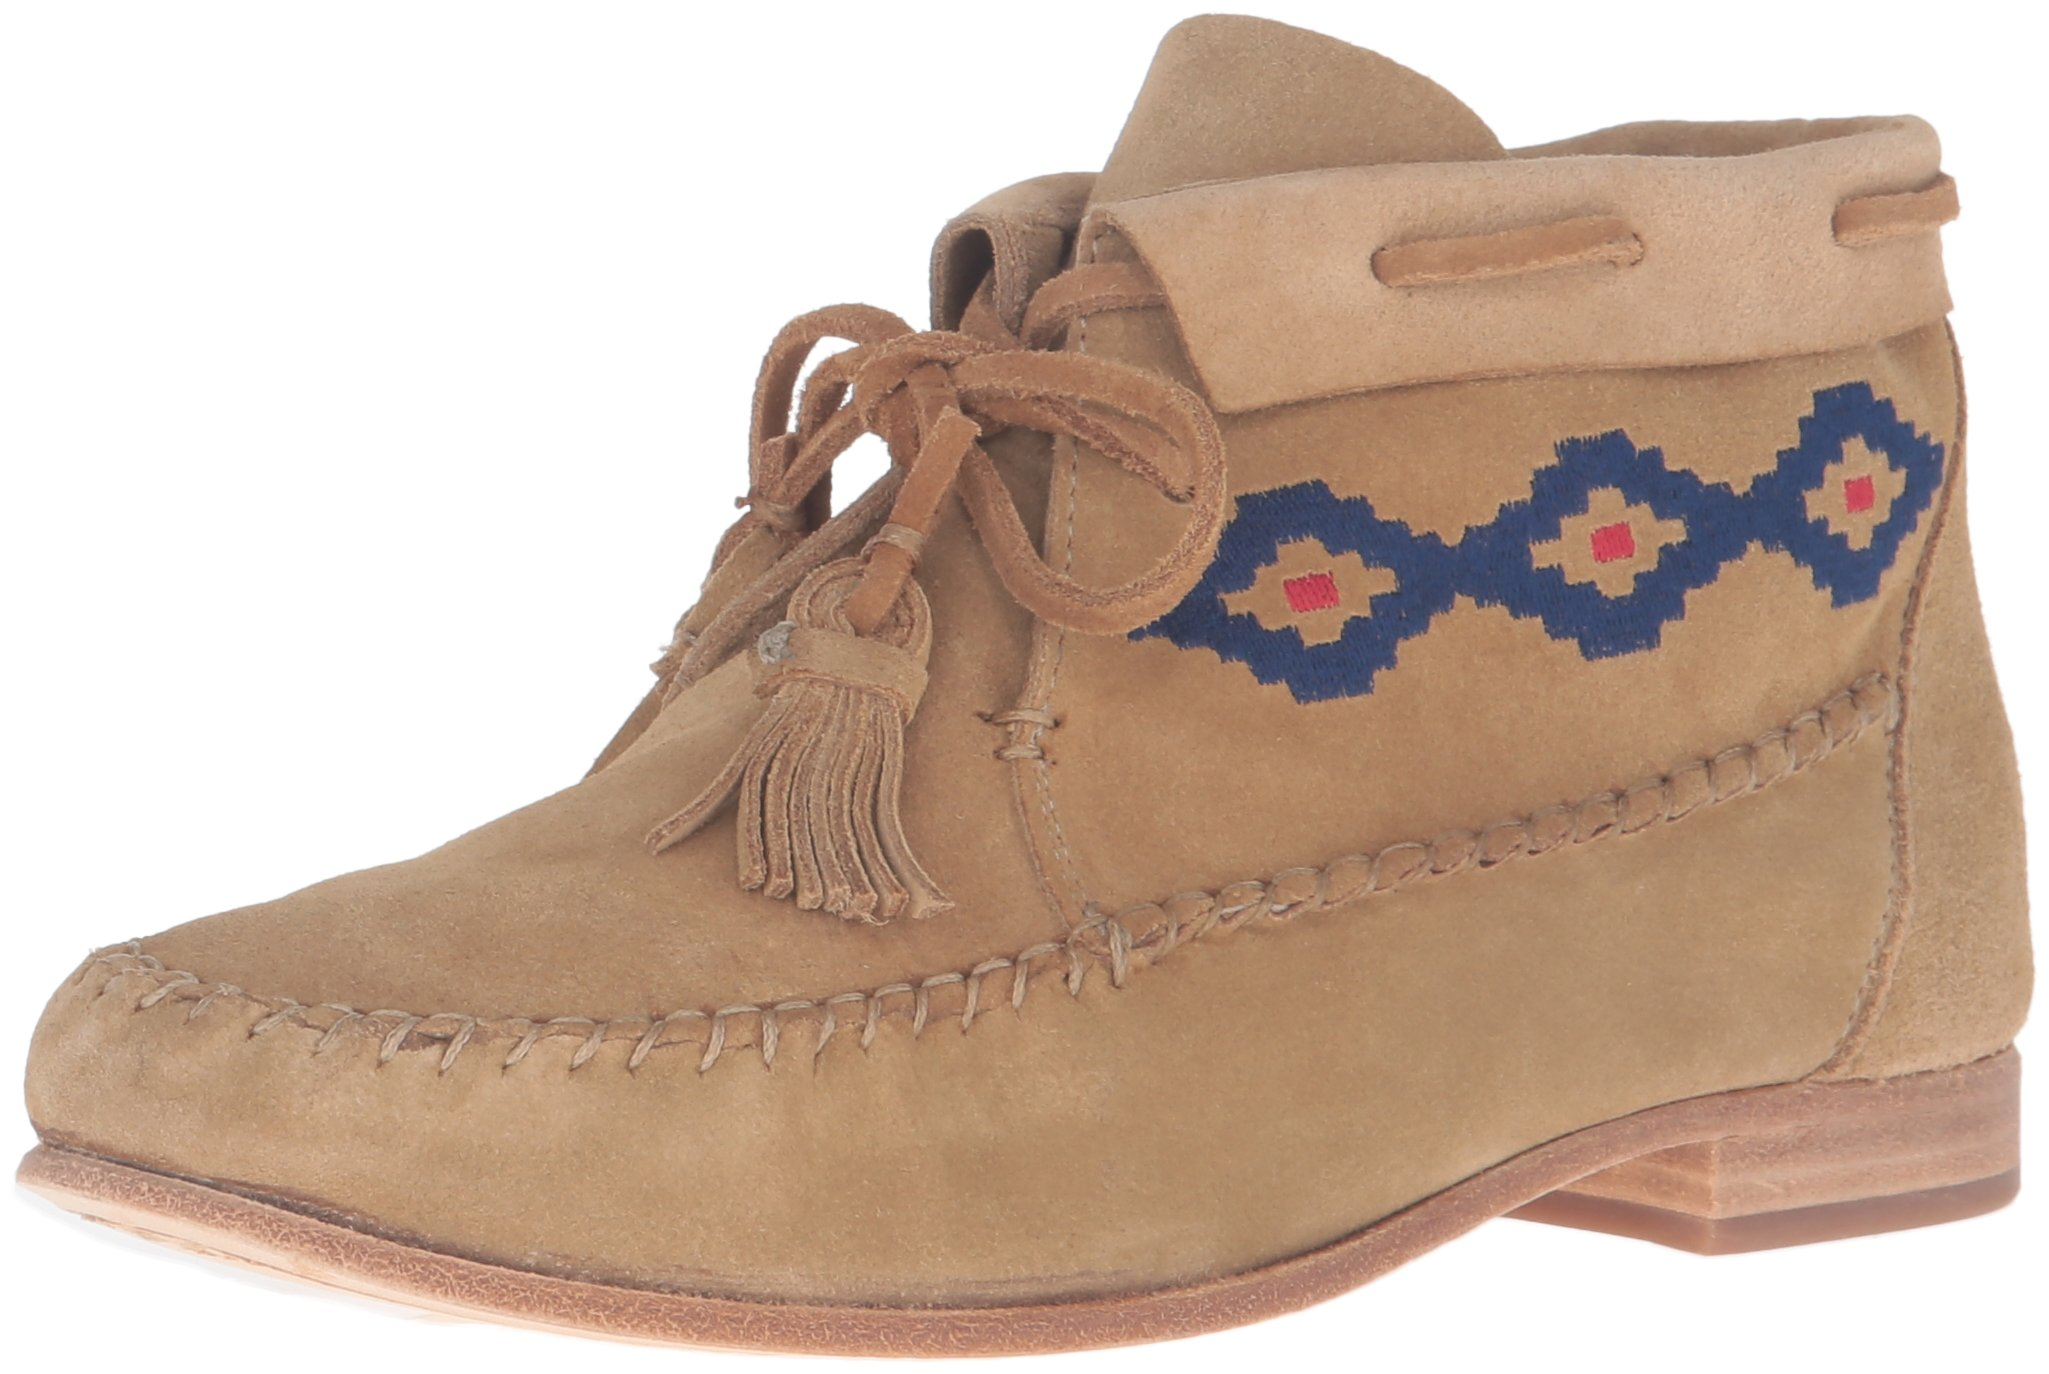 Soludos Women's Moccasin Emroidered Ankle Bootie, Stone, 9 M US